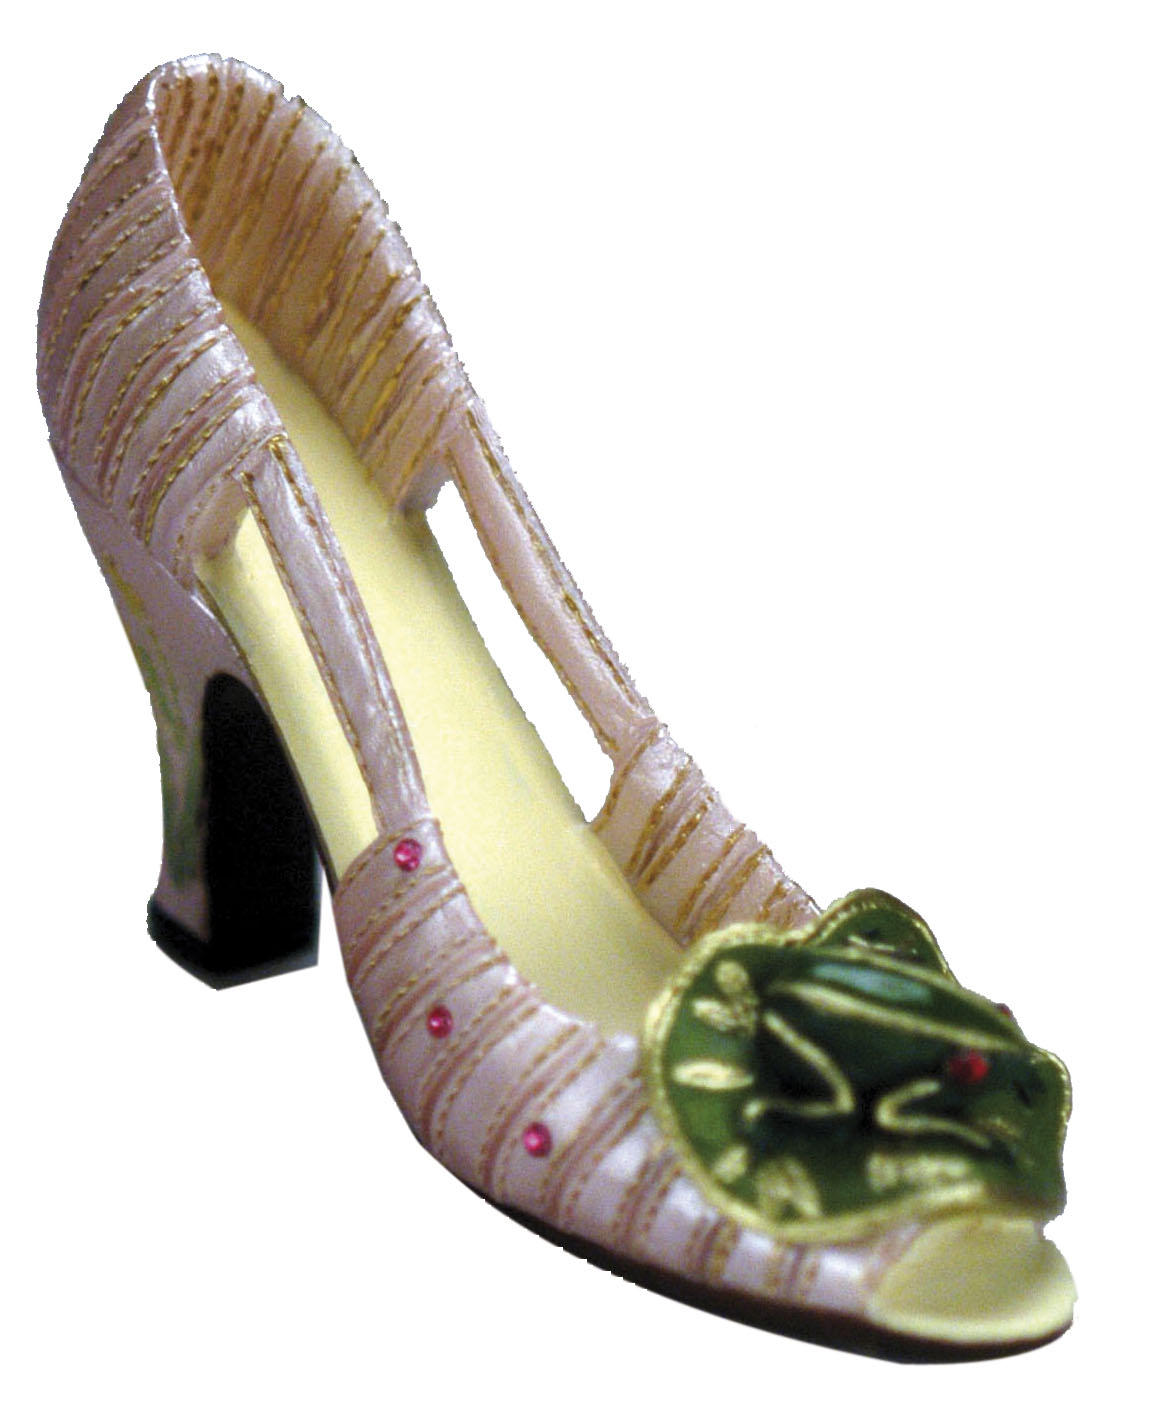 CP031-1 Grenouille